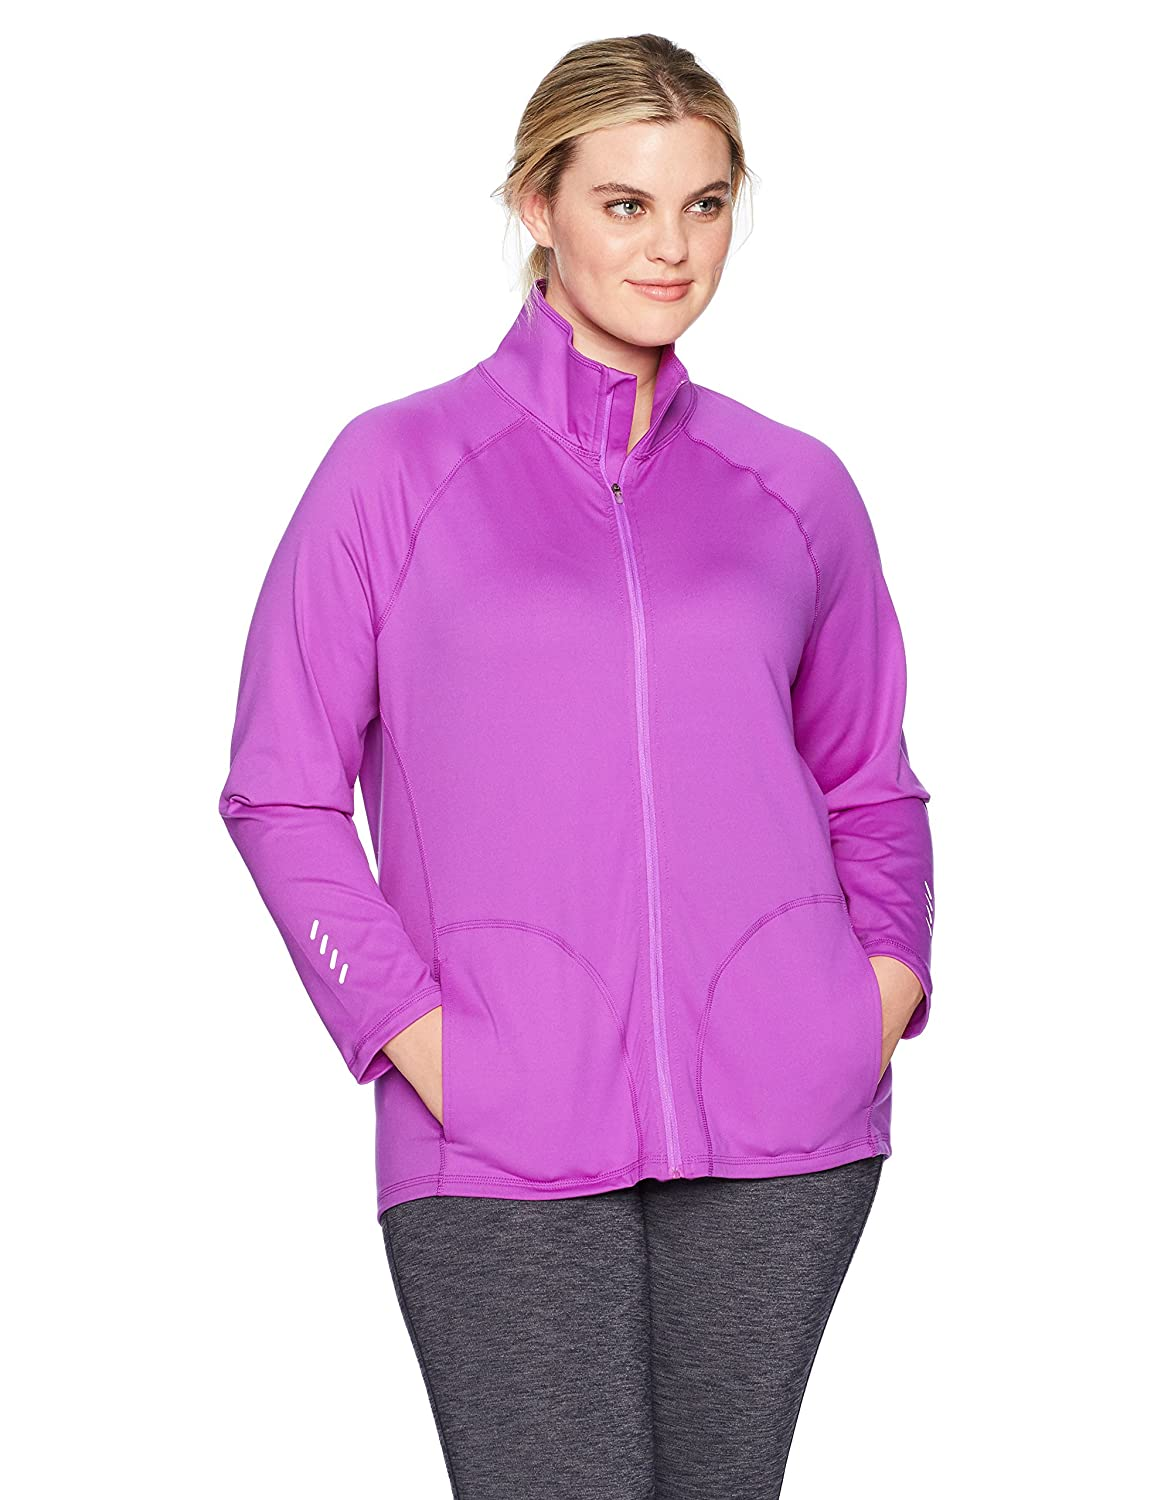 Just My Size Womens Plus-Size Active Full-Zip Mock Neck Jacket Just My Size Activewear OJ906